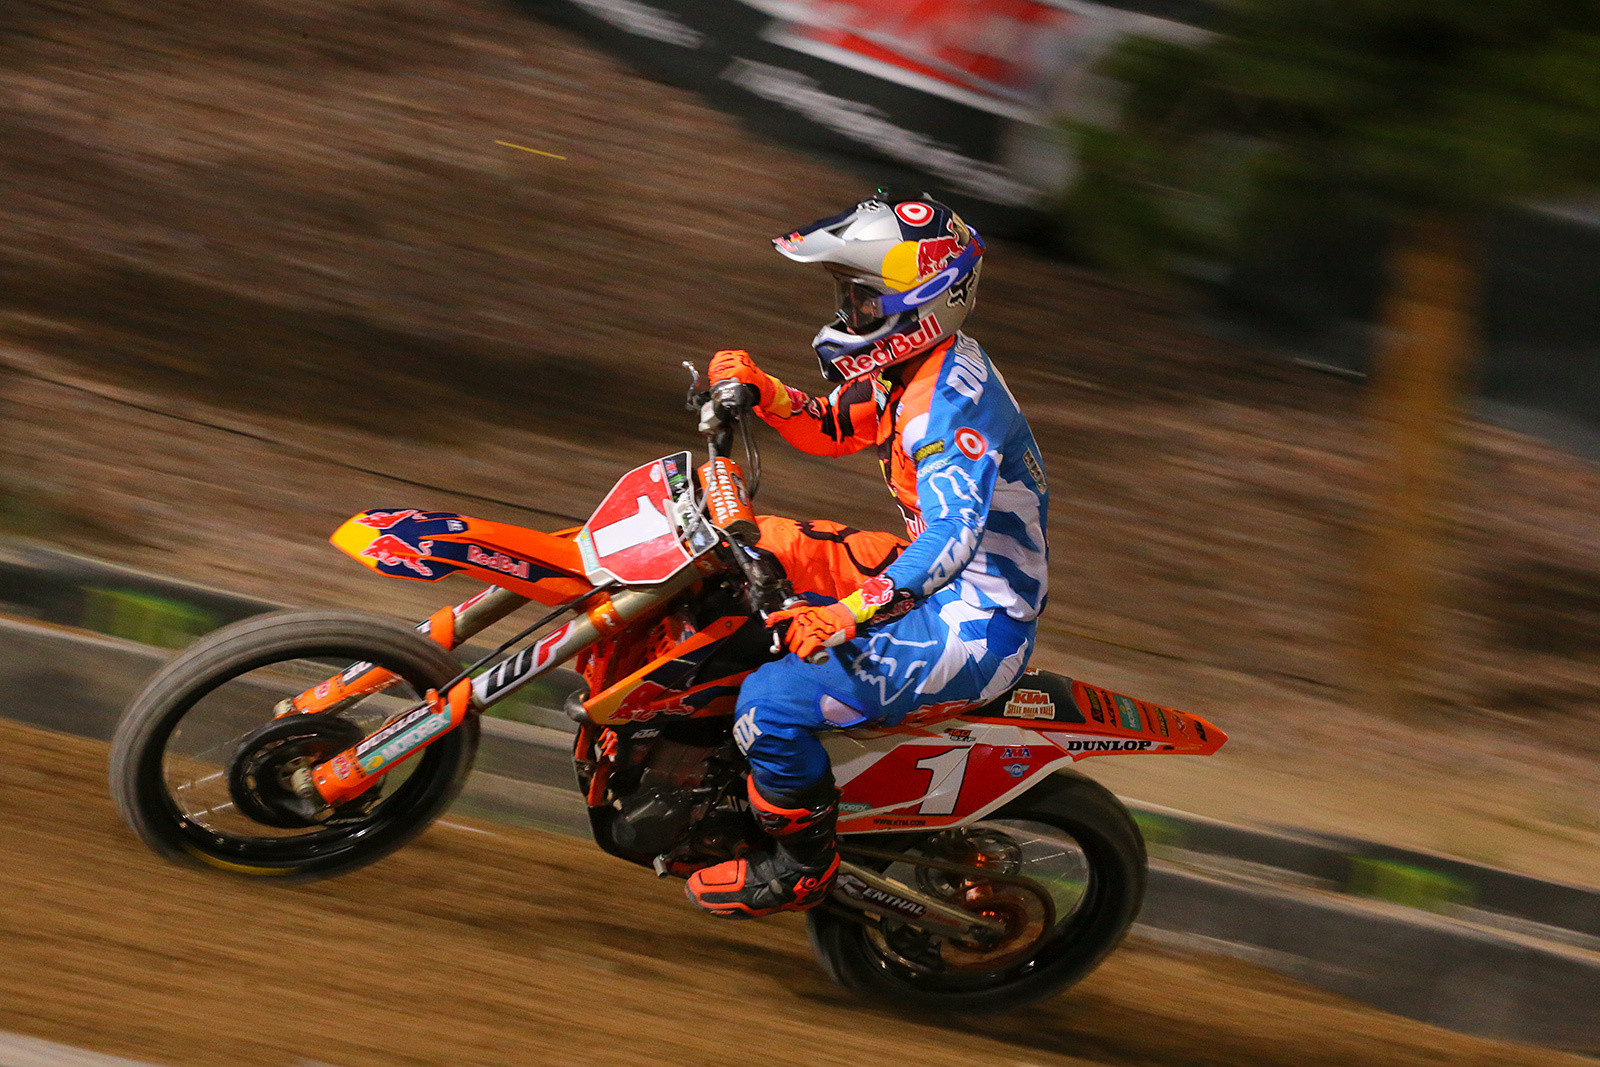 Ryan Dungey needed to finish fourth or better if Eli Tomac won, so he had to not only play offense, but defense.